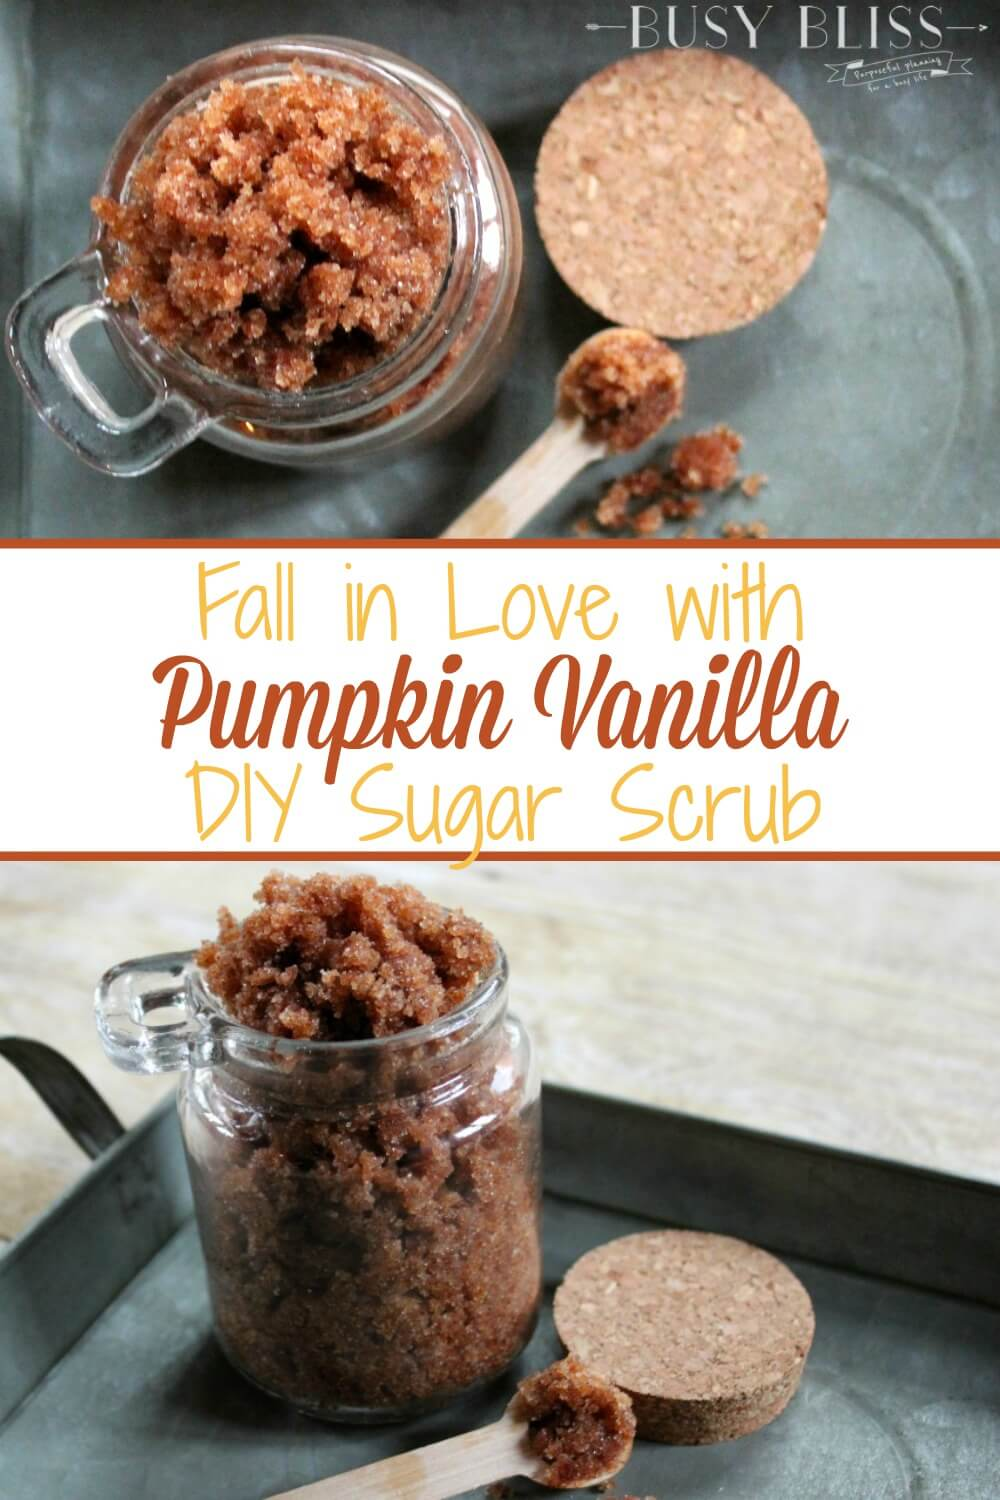 If you're looking for easy homemade gift ideas, Pumpkin Vanilla DIY sugar scrub is it! Made with vanilla, coconut oil, and pumpkin spice, it is a great way to treat those on your Christmas list to a spa experience without the spa price. Use it as a body scrub for exfoliating dry skin or as a simple facial. It's great for teacher gifts, hostess gifts, or as an addition to your self-care routine.